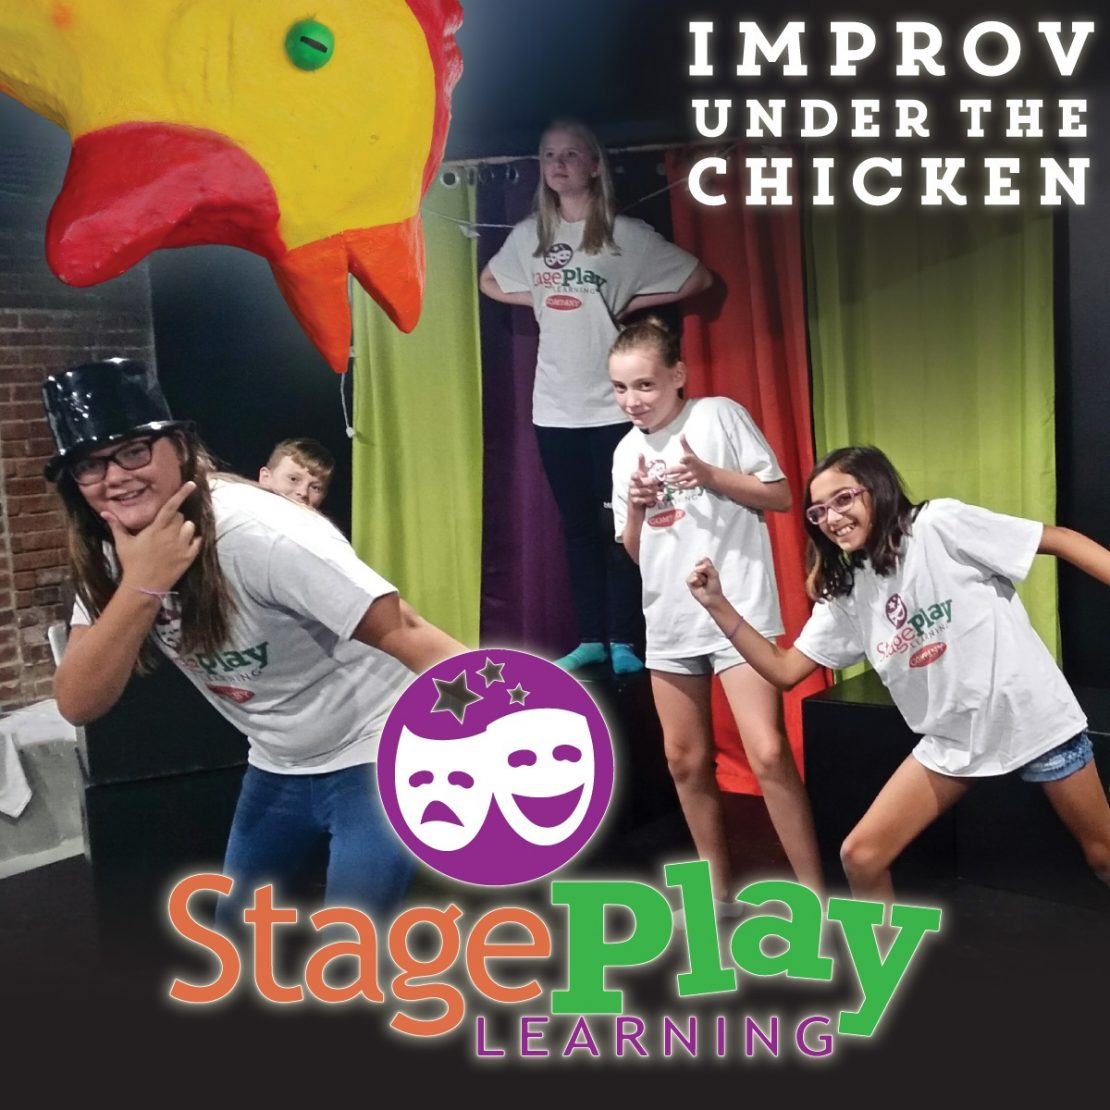 05-23-19-stageplay-improv-chicken-sq